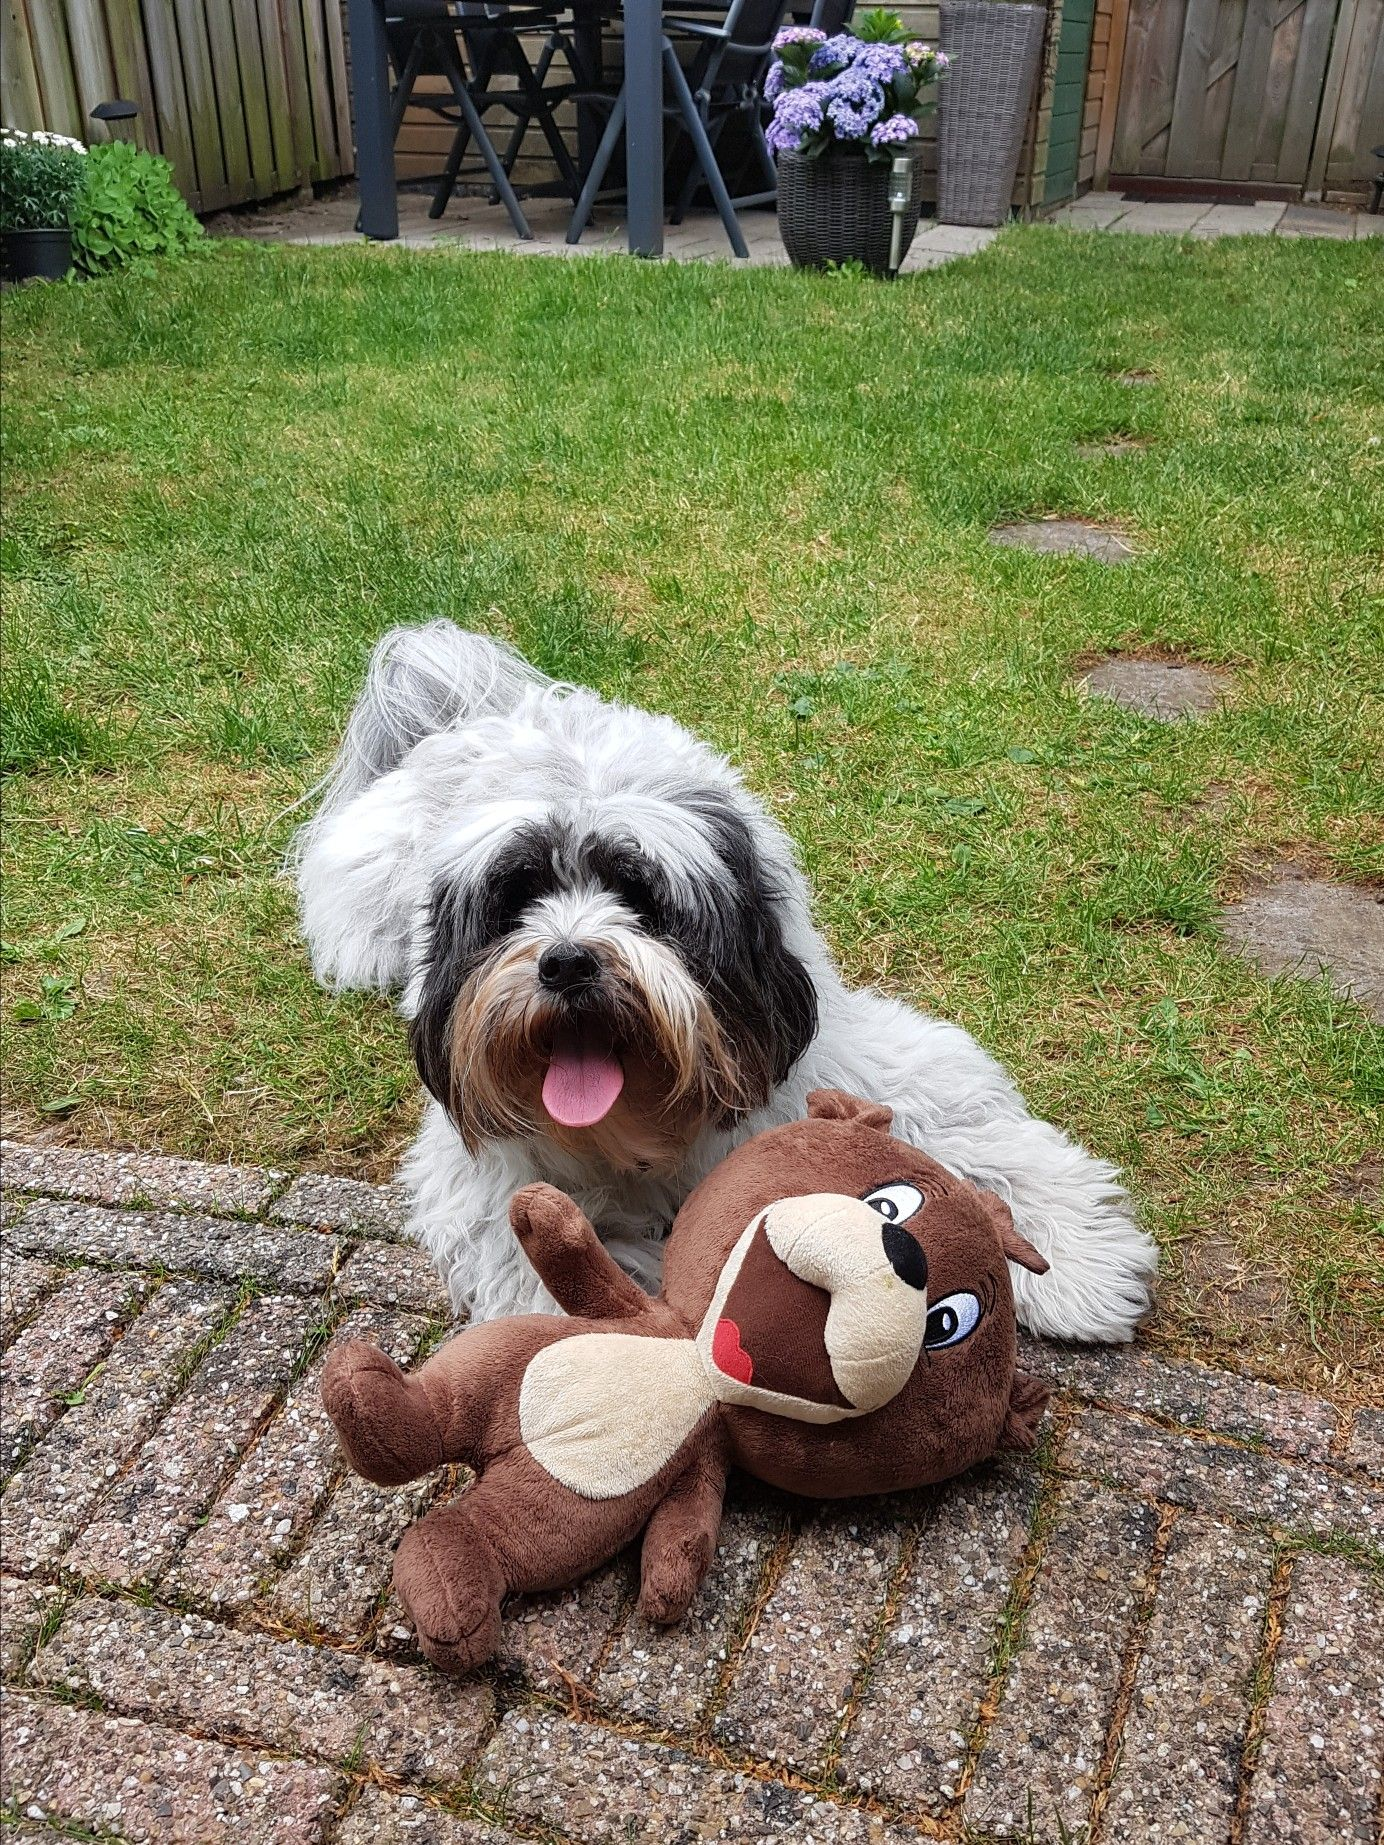 My sweet Tibetan Terrier Lady and her bear Lhasa apso